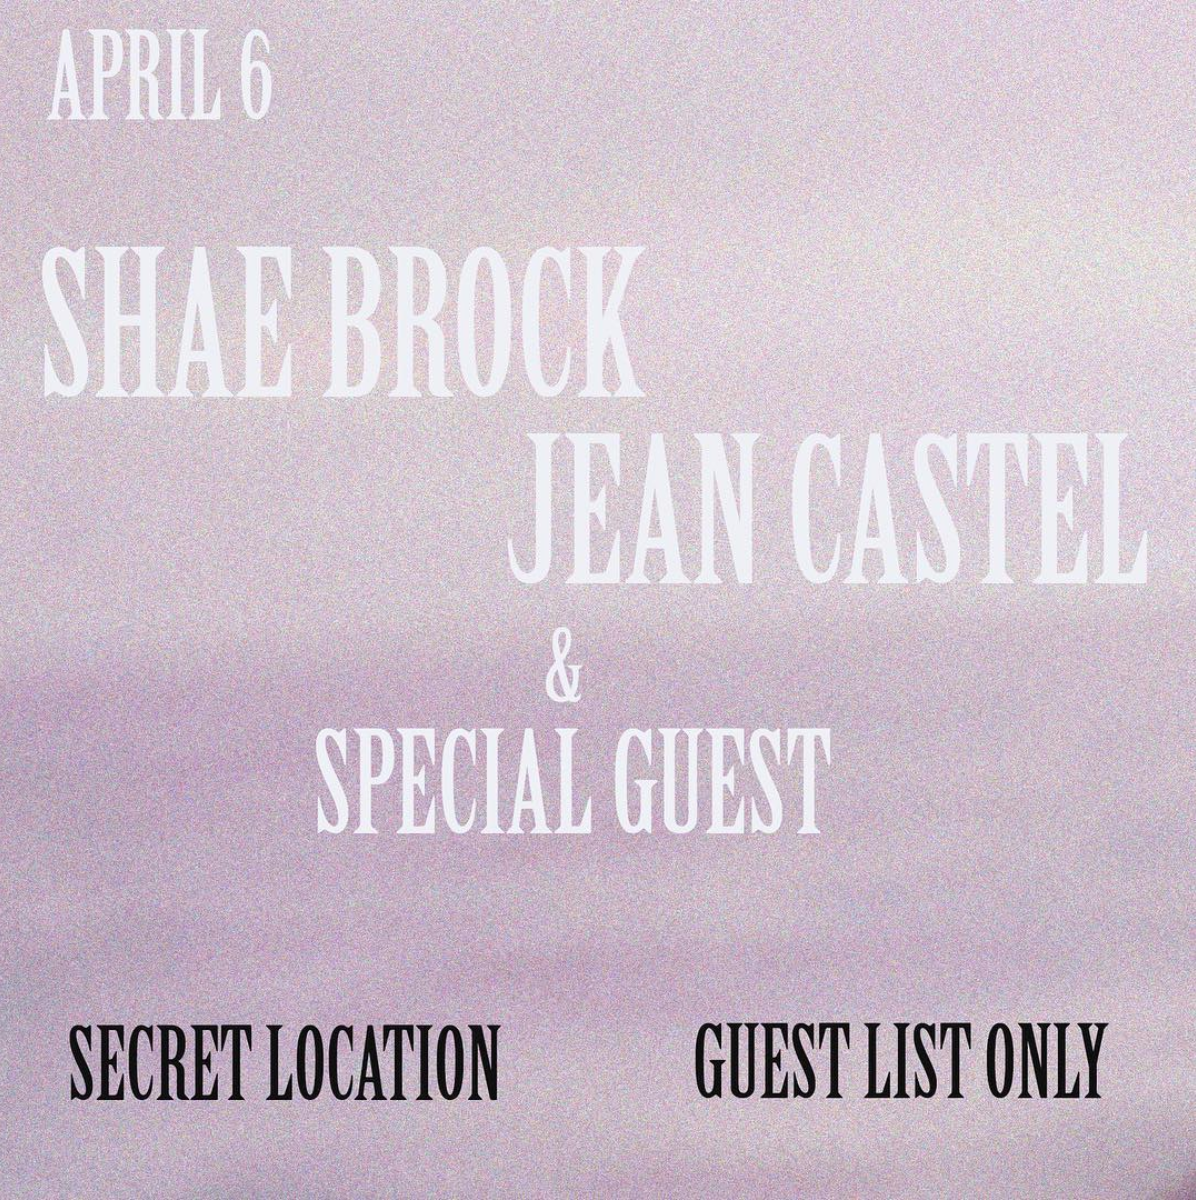 Private show - Jean performed an acoustic show on April 6th, 2019.